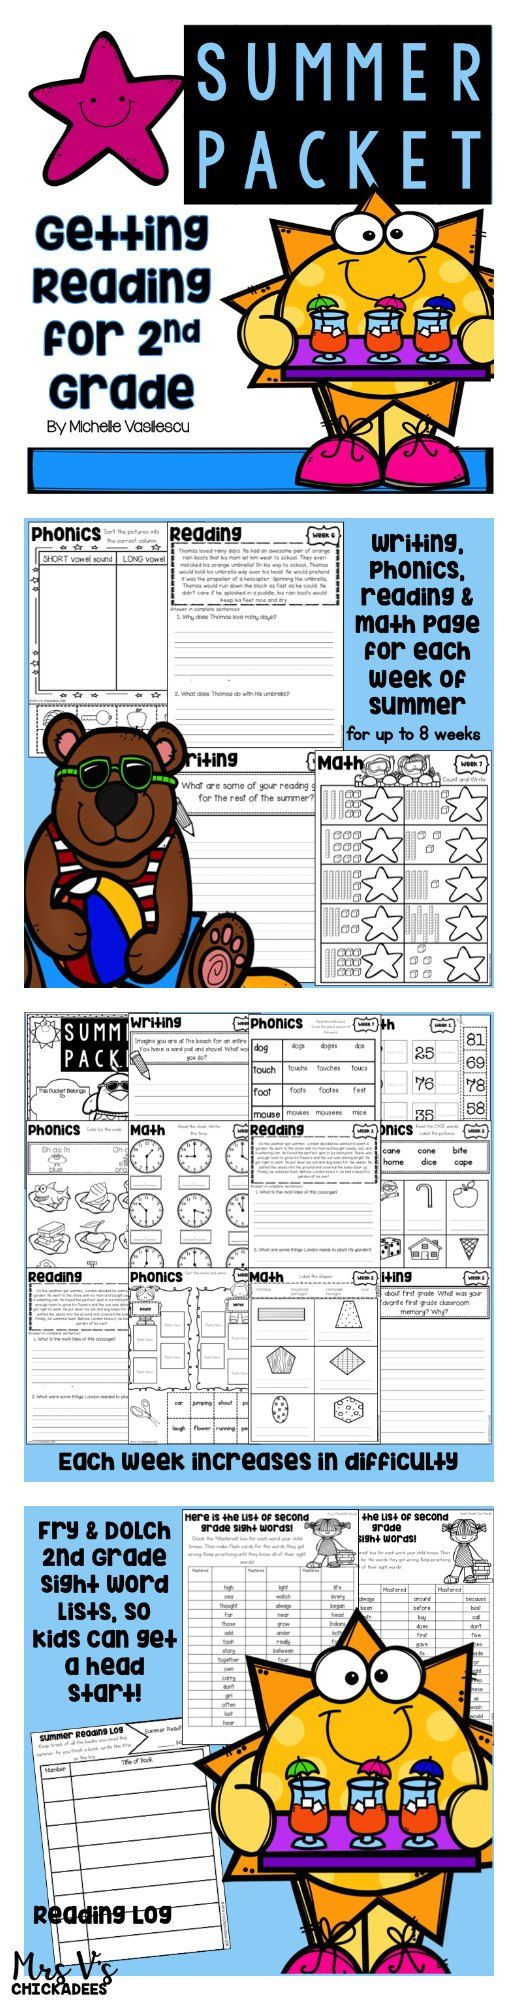 writing paper for first grade students Pinterest explore handwriting first grade writing paper template with picture use this writing paper for students to draw a picture and write a story.